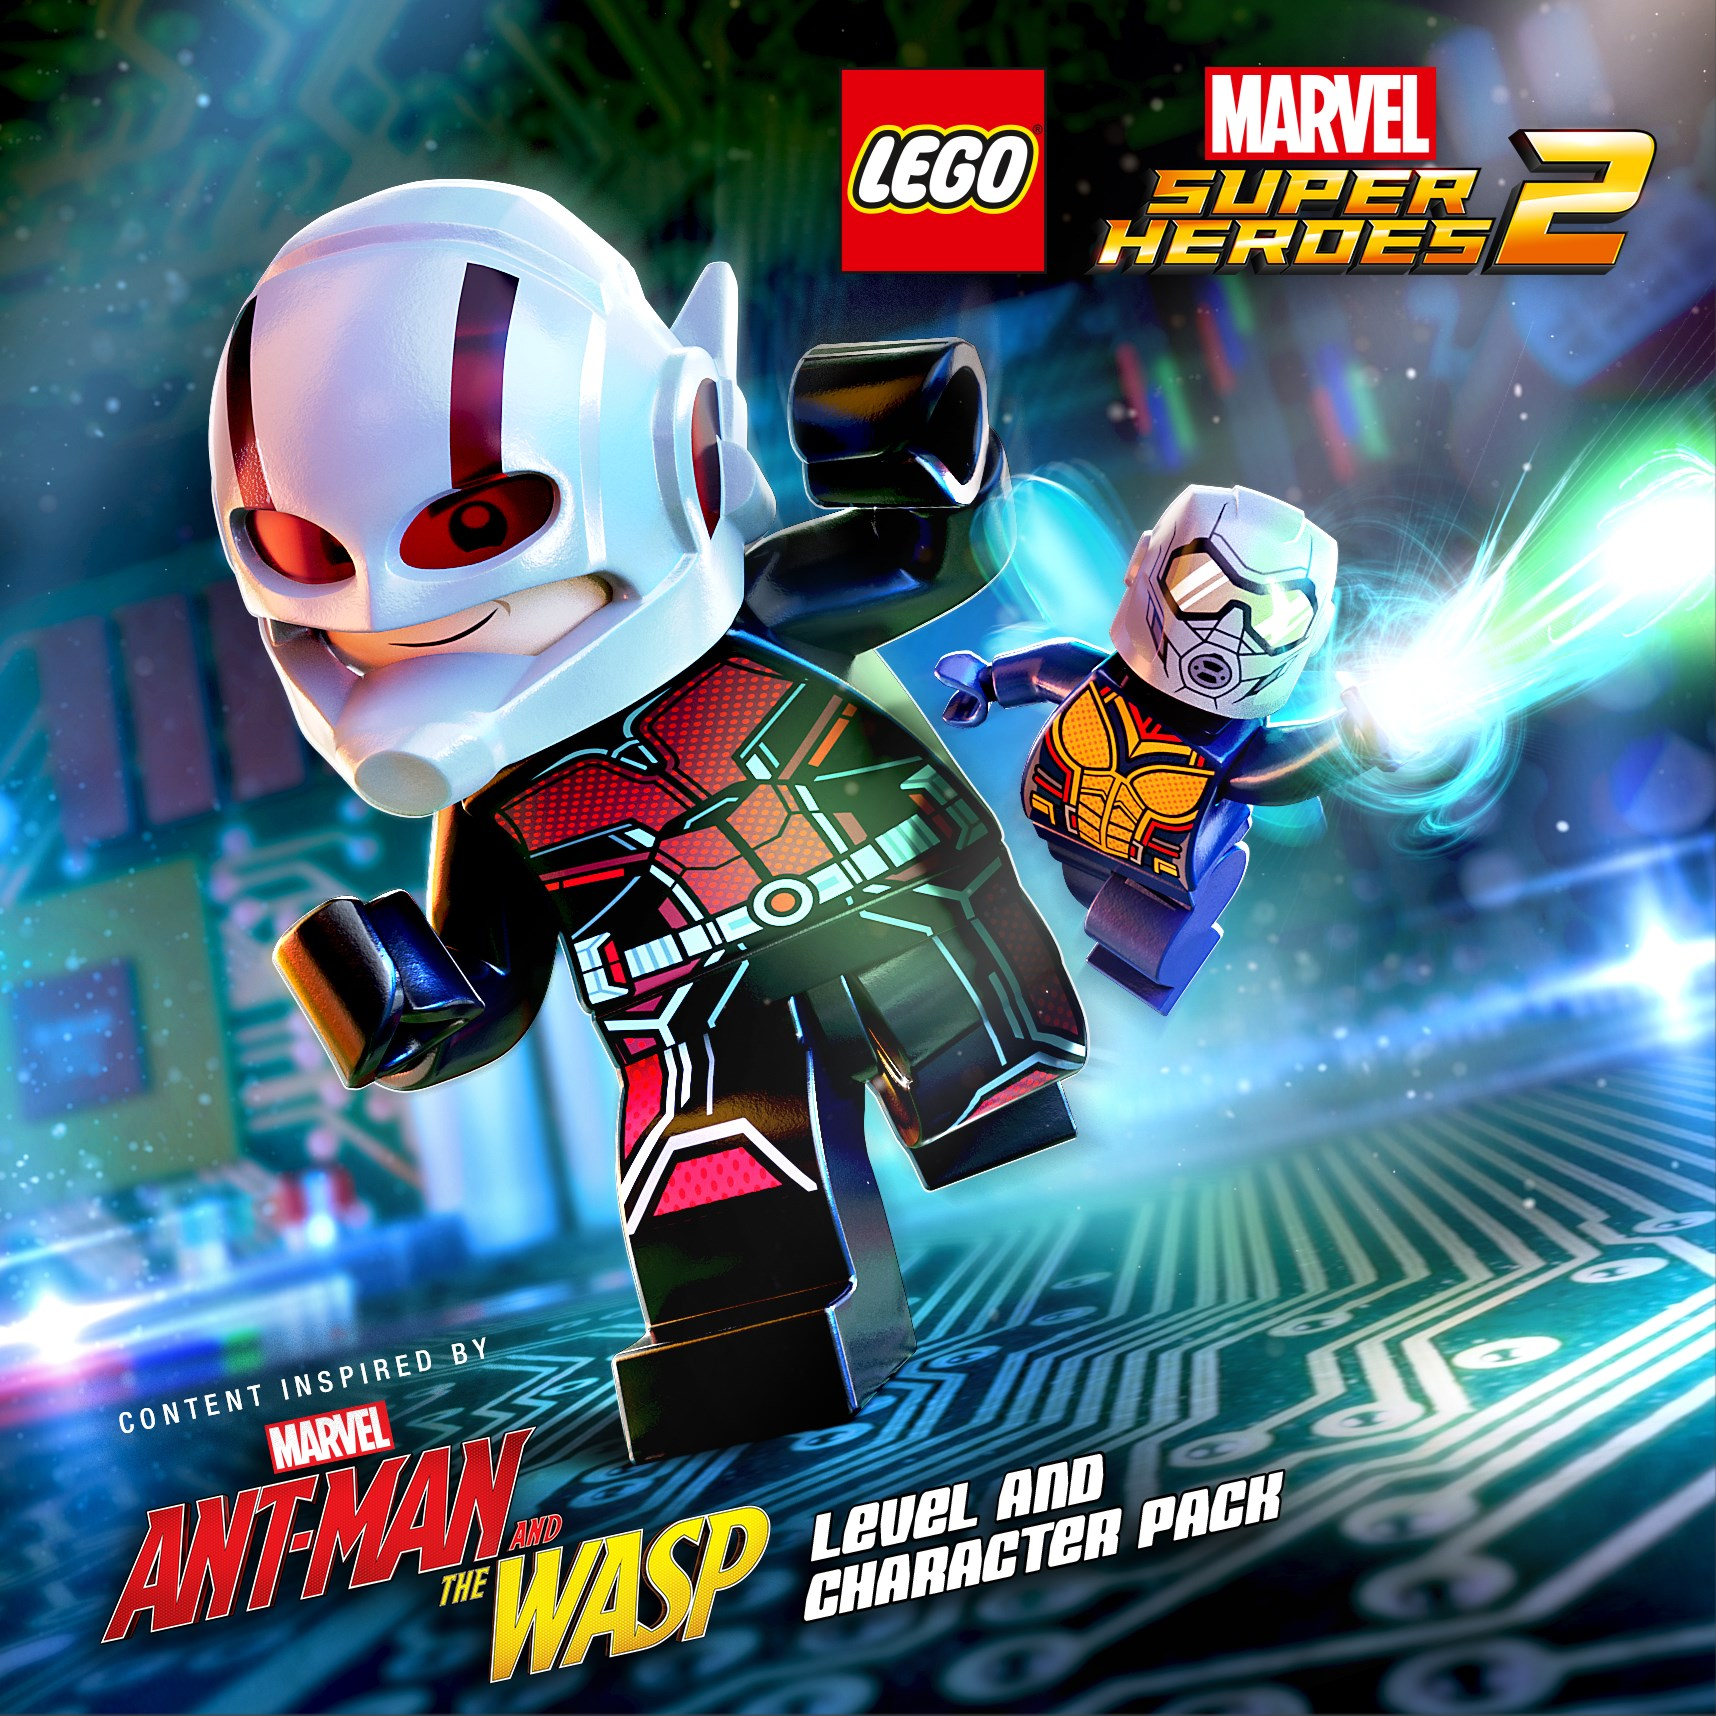 """LEGO® Marvel Super Heroes 2 """"Marvel's Ant-Man and the Wasp"""" DLC Pack Released"""